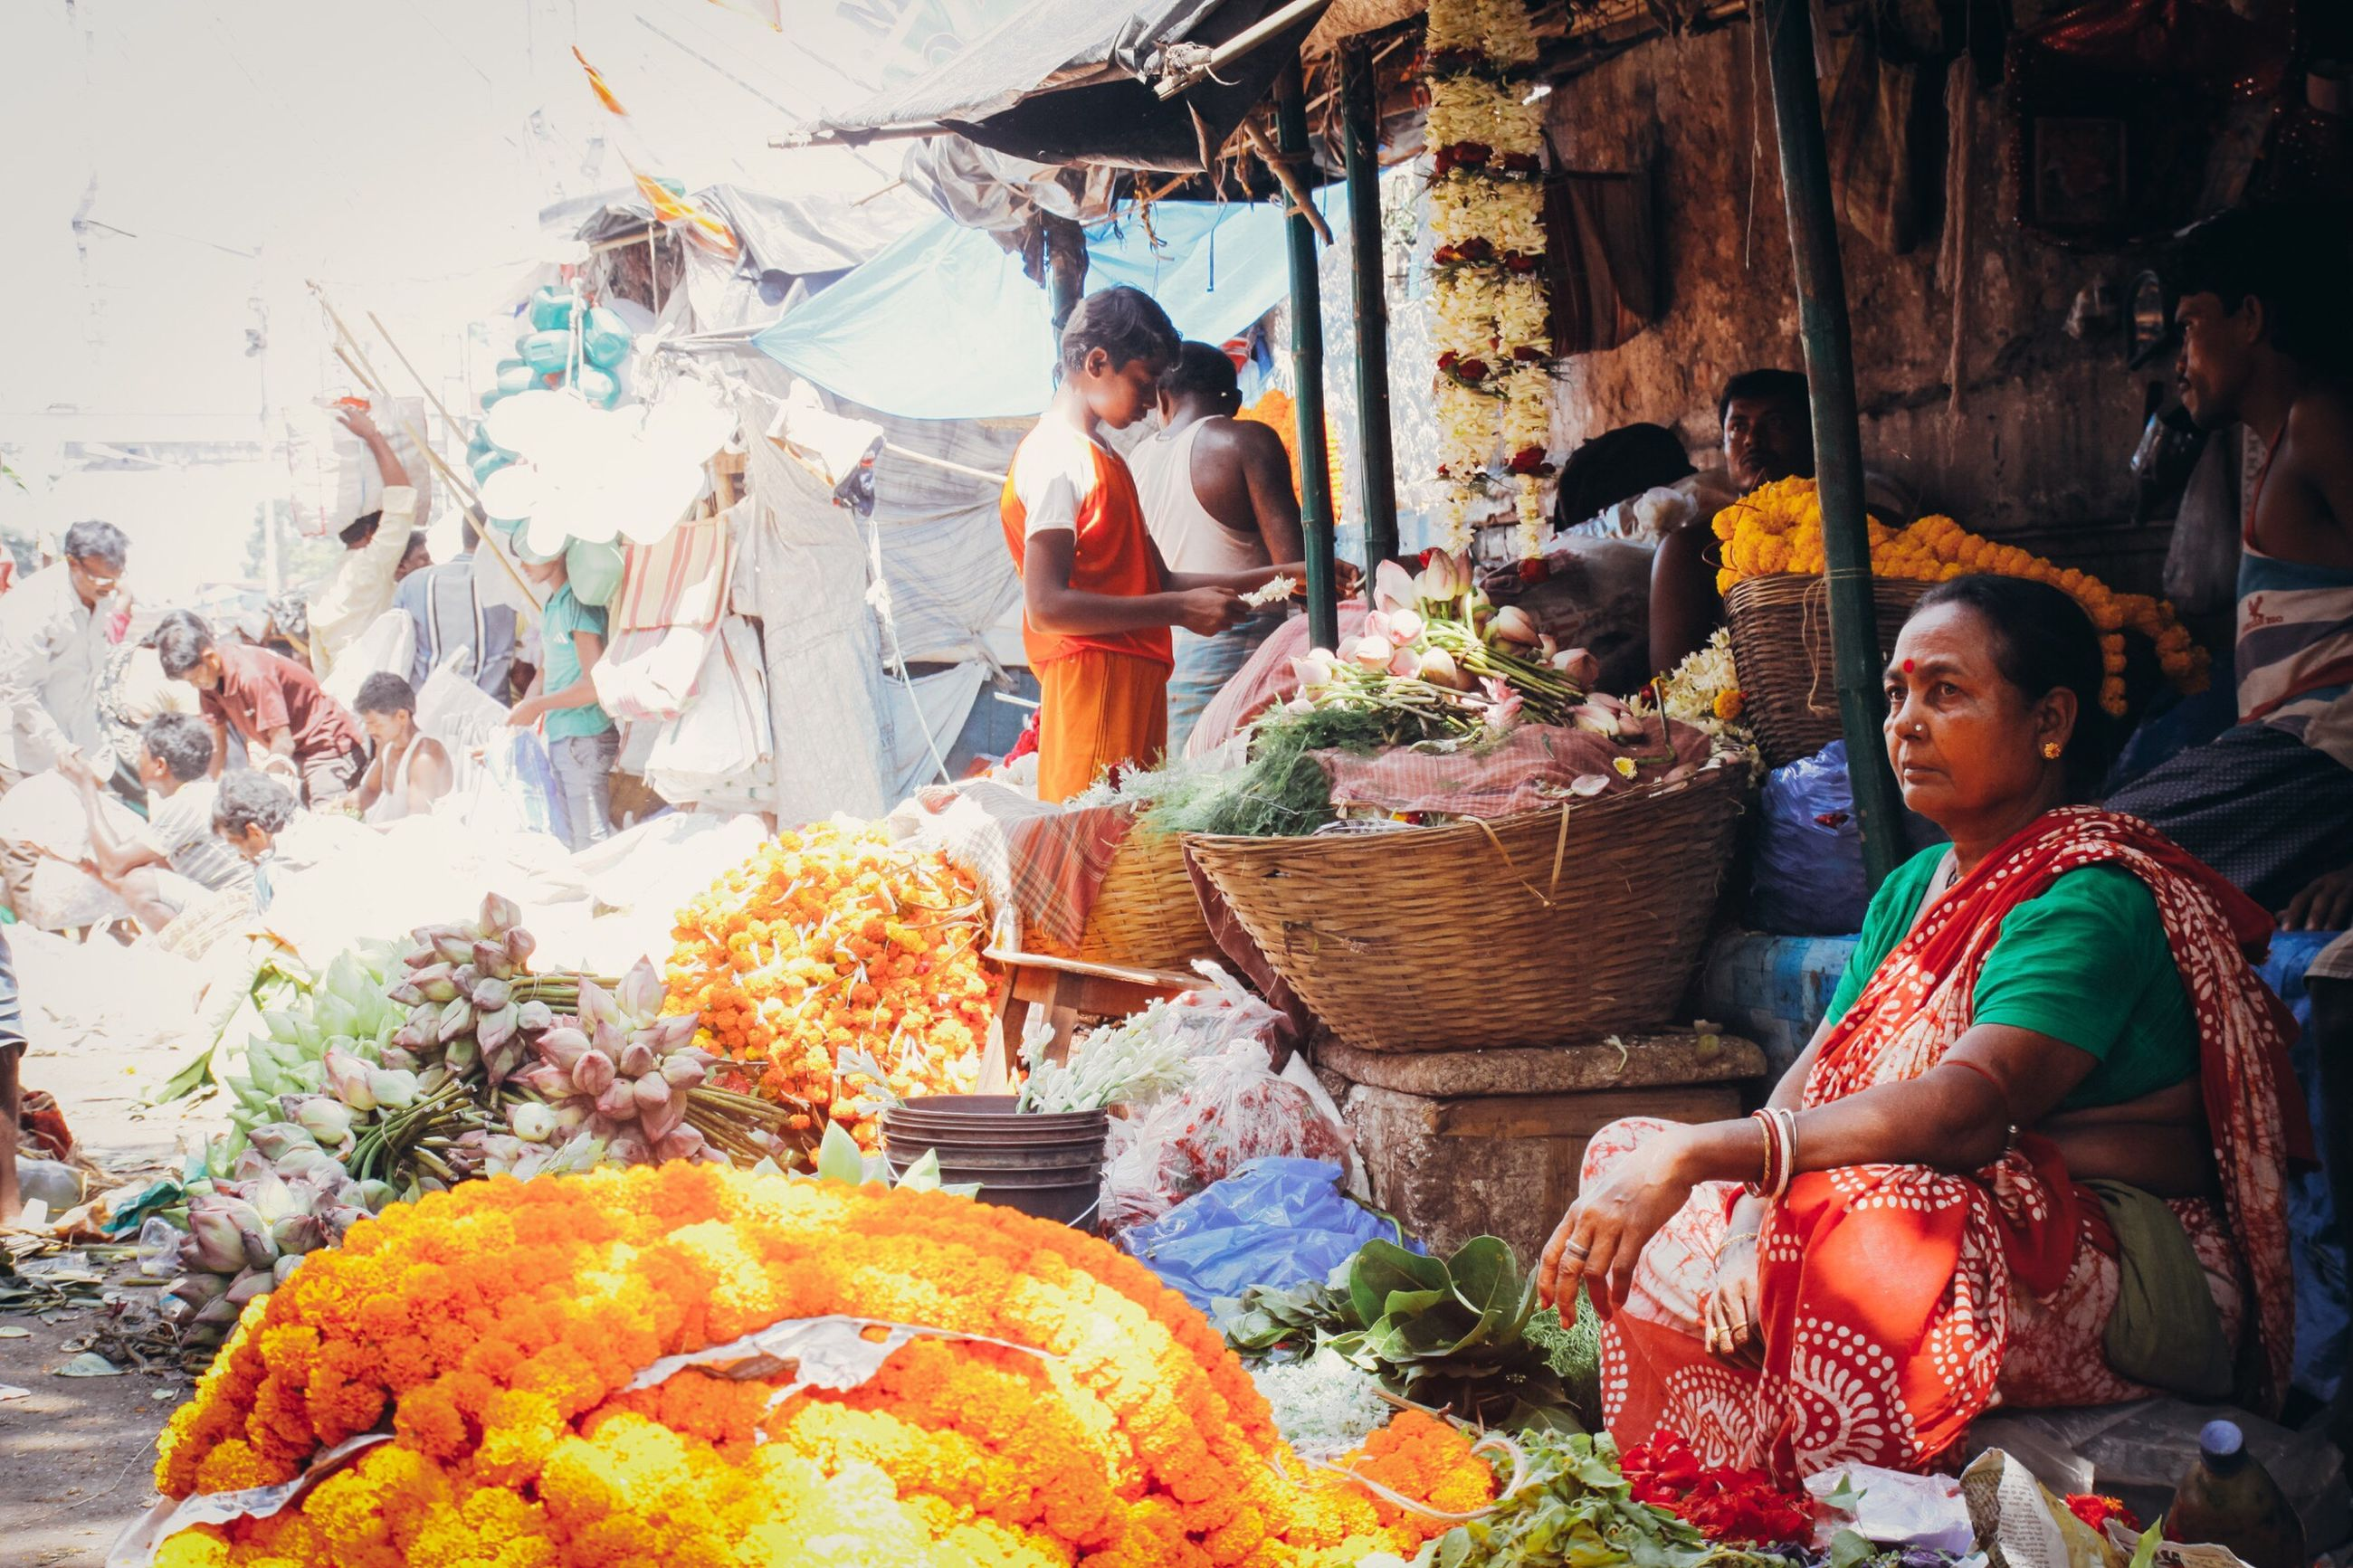 freshness, variation, real people, choice, market, fruit, food and drink, men, adults only, food, market stall, outdoors, healthy eating, for sale, women, day, adult, people